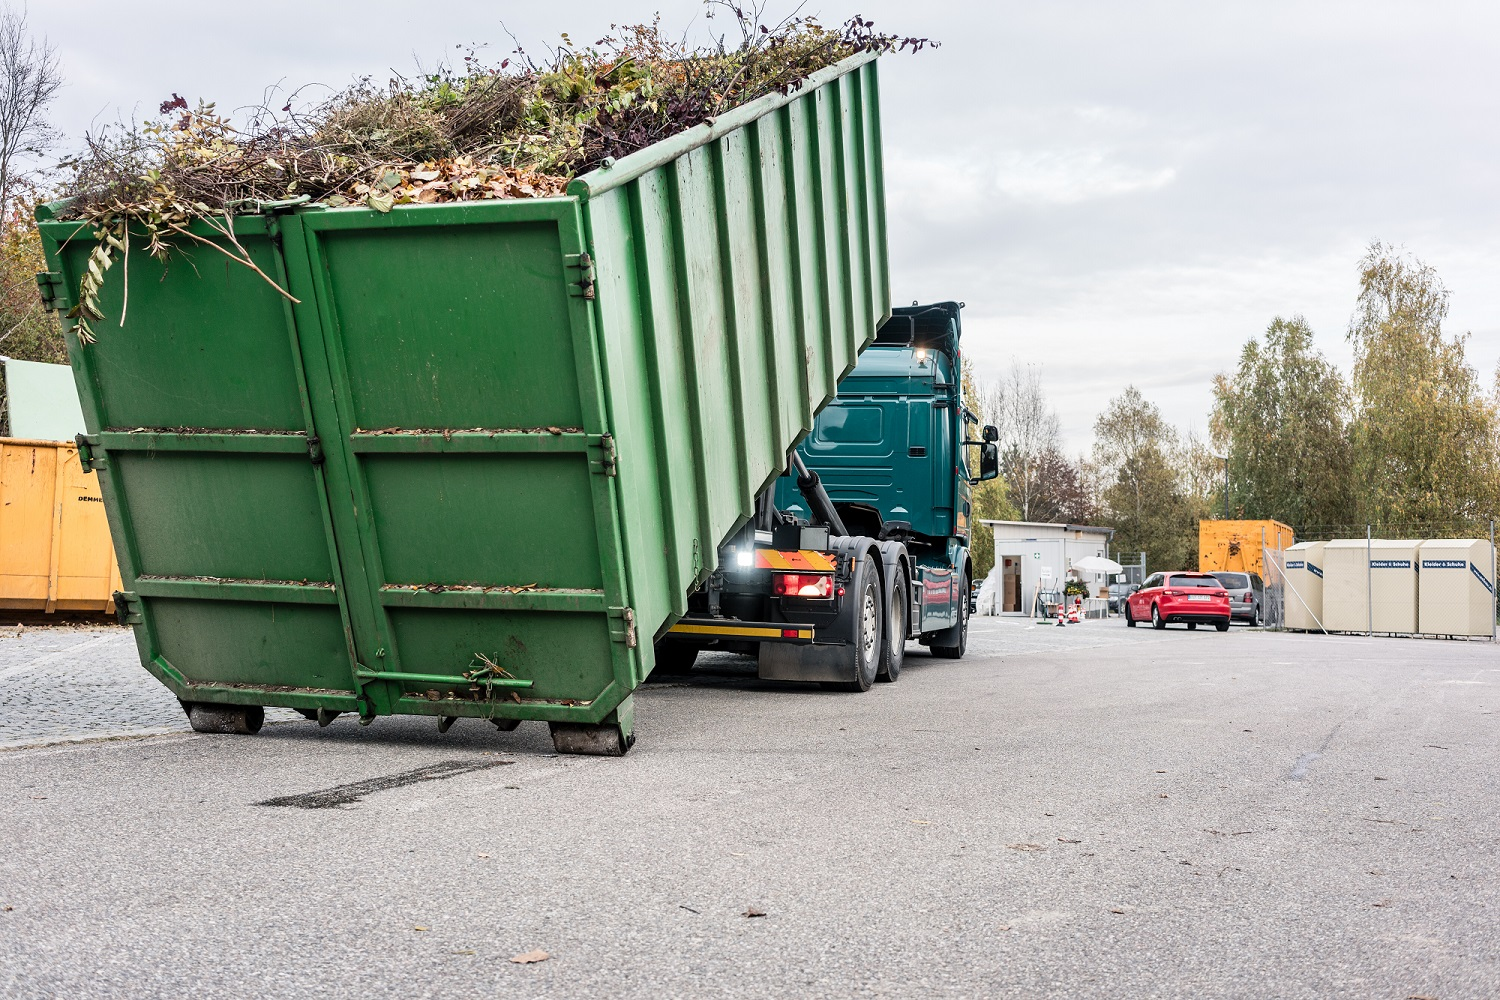 £1M Fine for Waste Company Following Reversing Vehicle Death